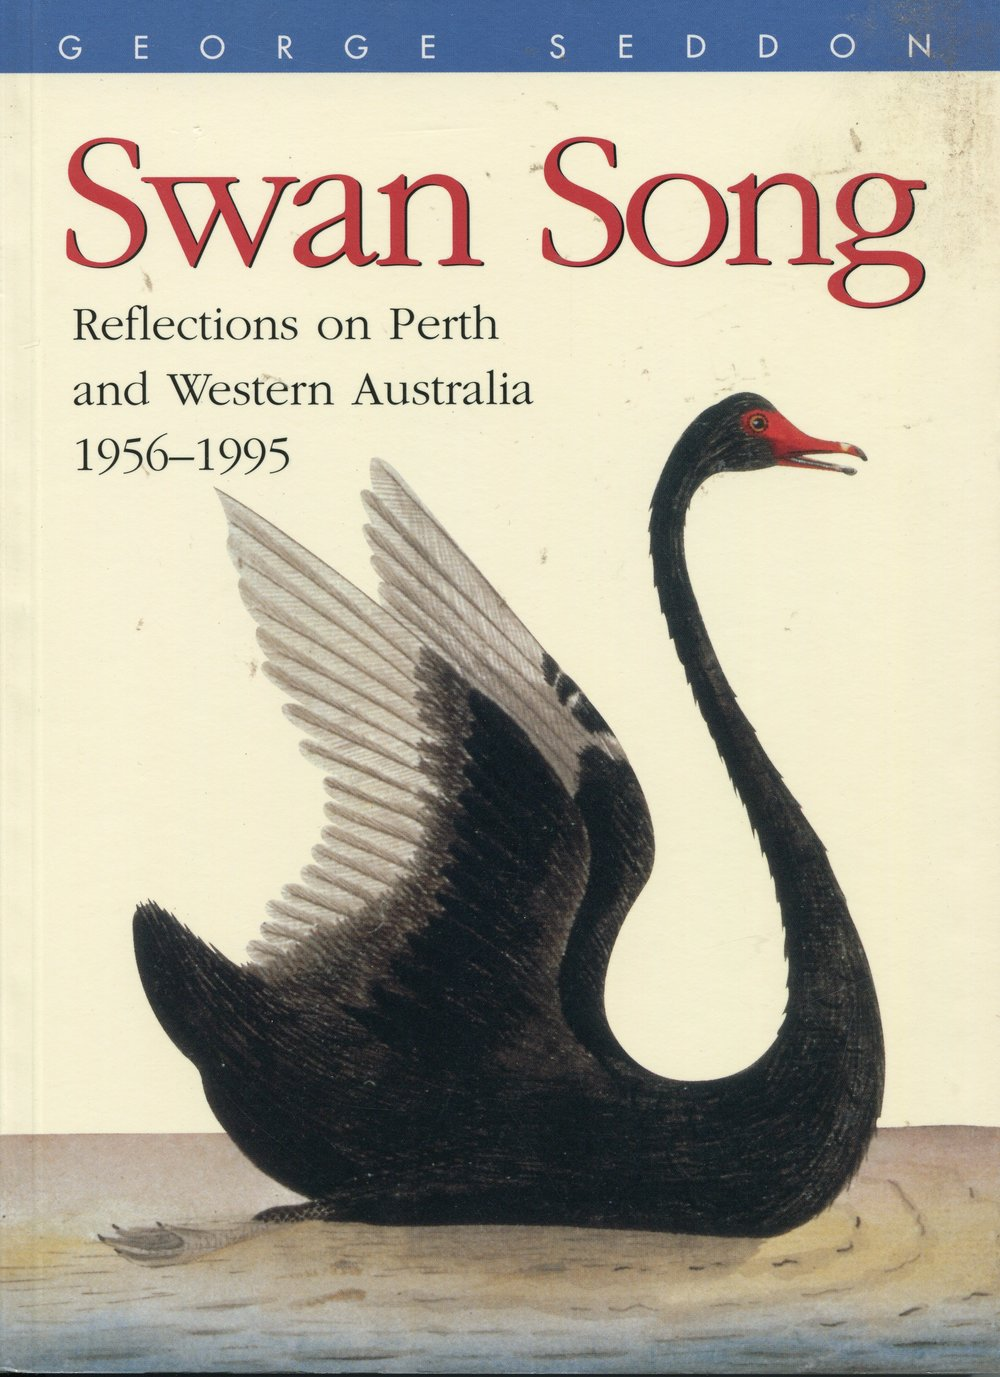 Swan song : reflections on Perth and Western Australia, 1956-1995   George Seddon (1927-2007)